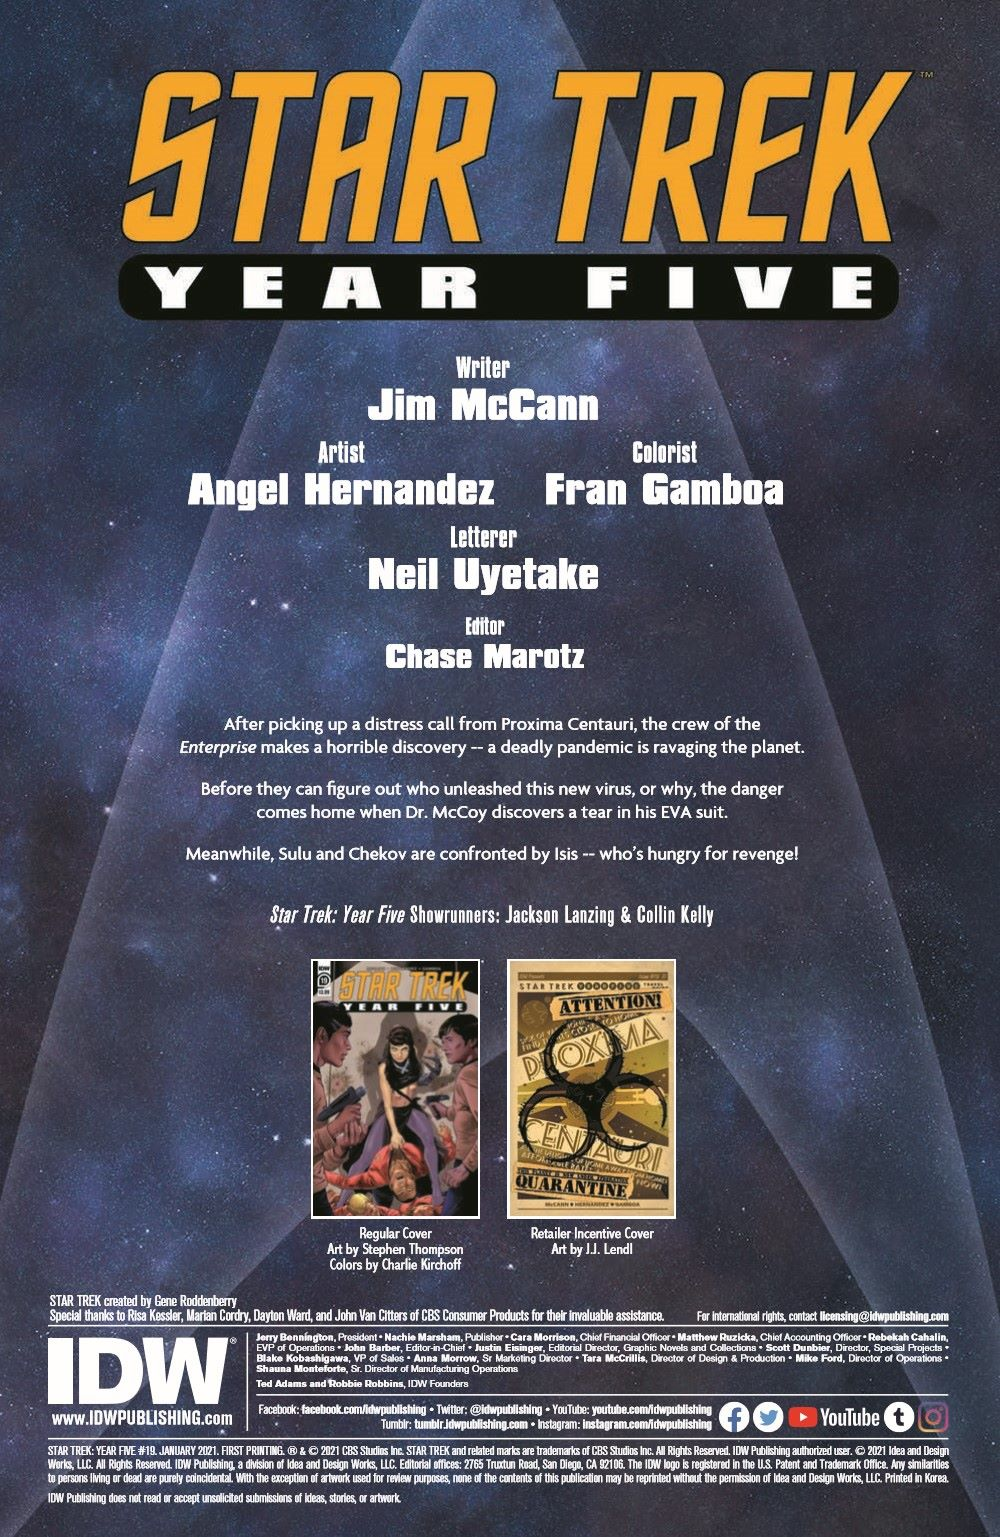 ST_YearFive19-pr-2 ComicList Previews: STAR TREK YEAR FIVE #19